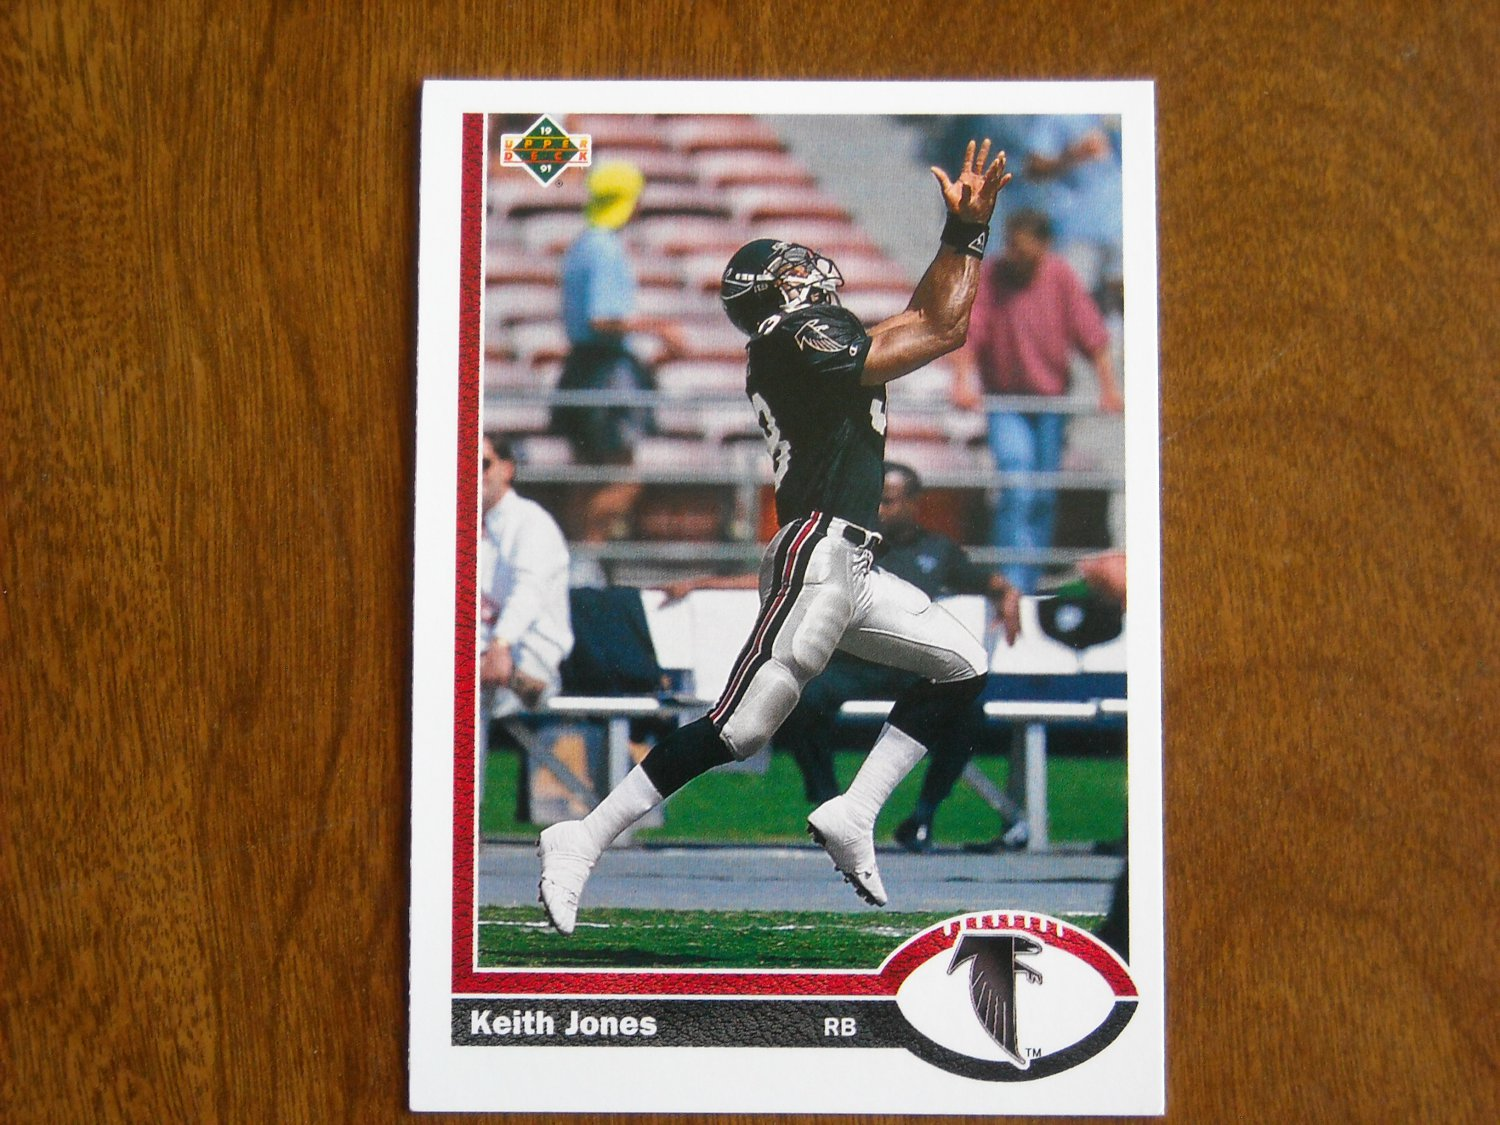 Keith Jones Atlanta Falcons Running Back Card No. 594 - 1991 Upper Deck Football Card